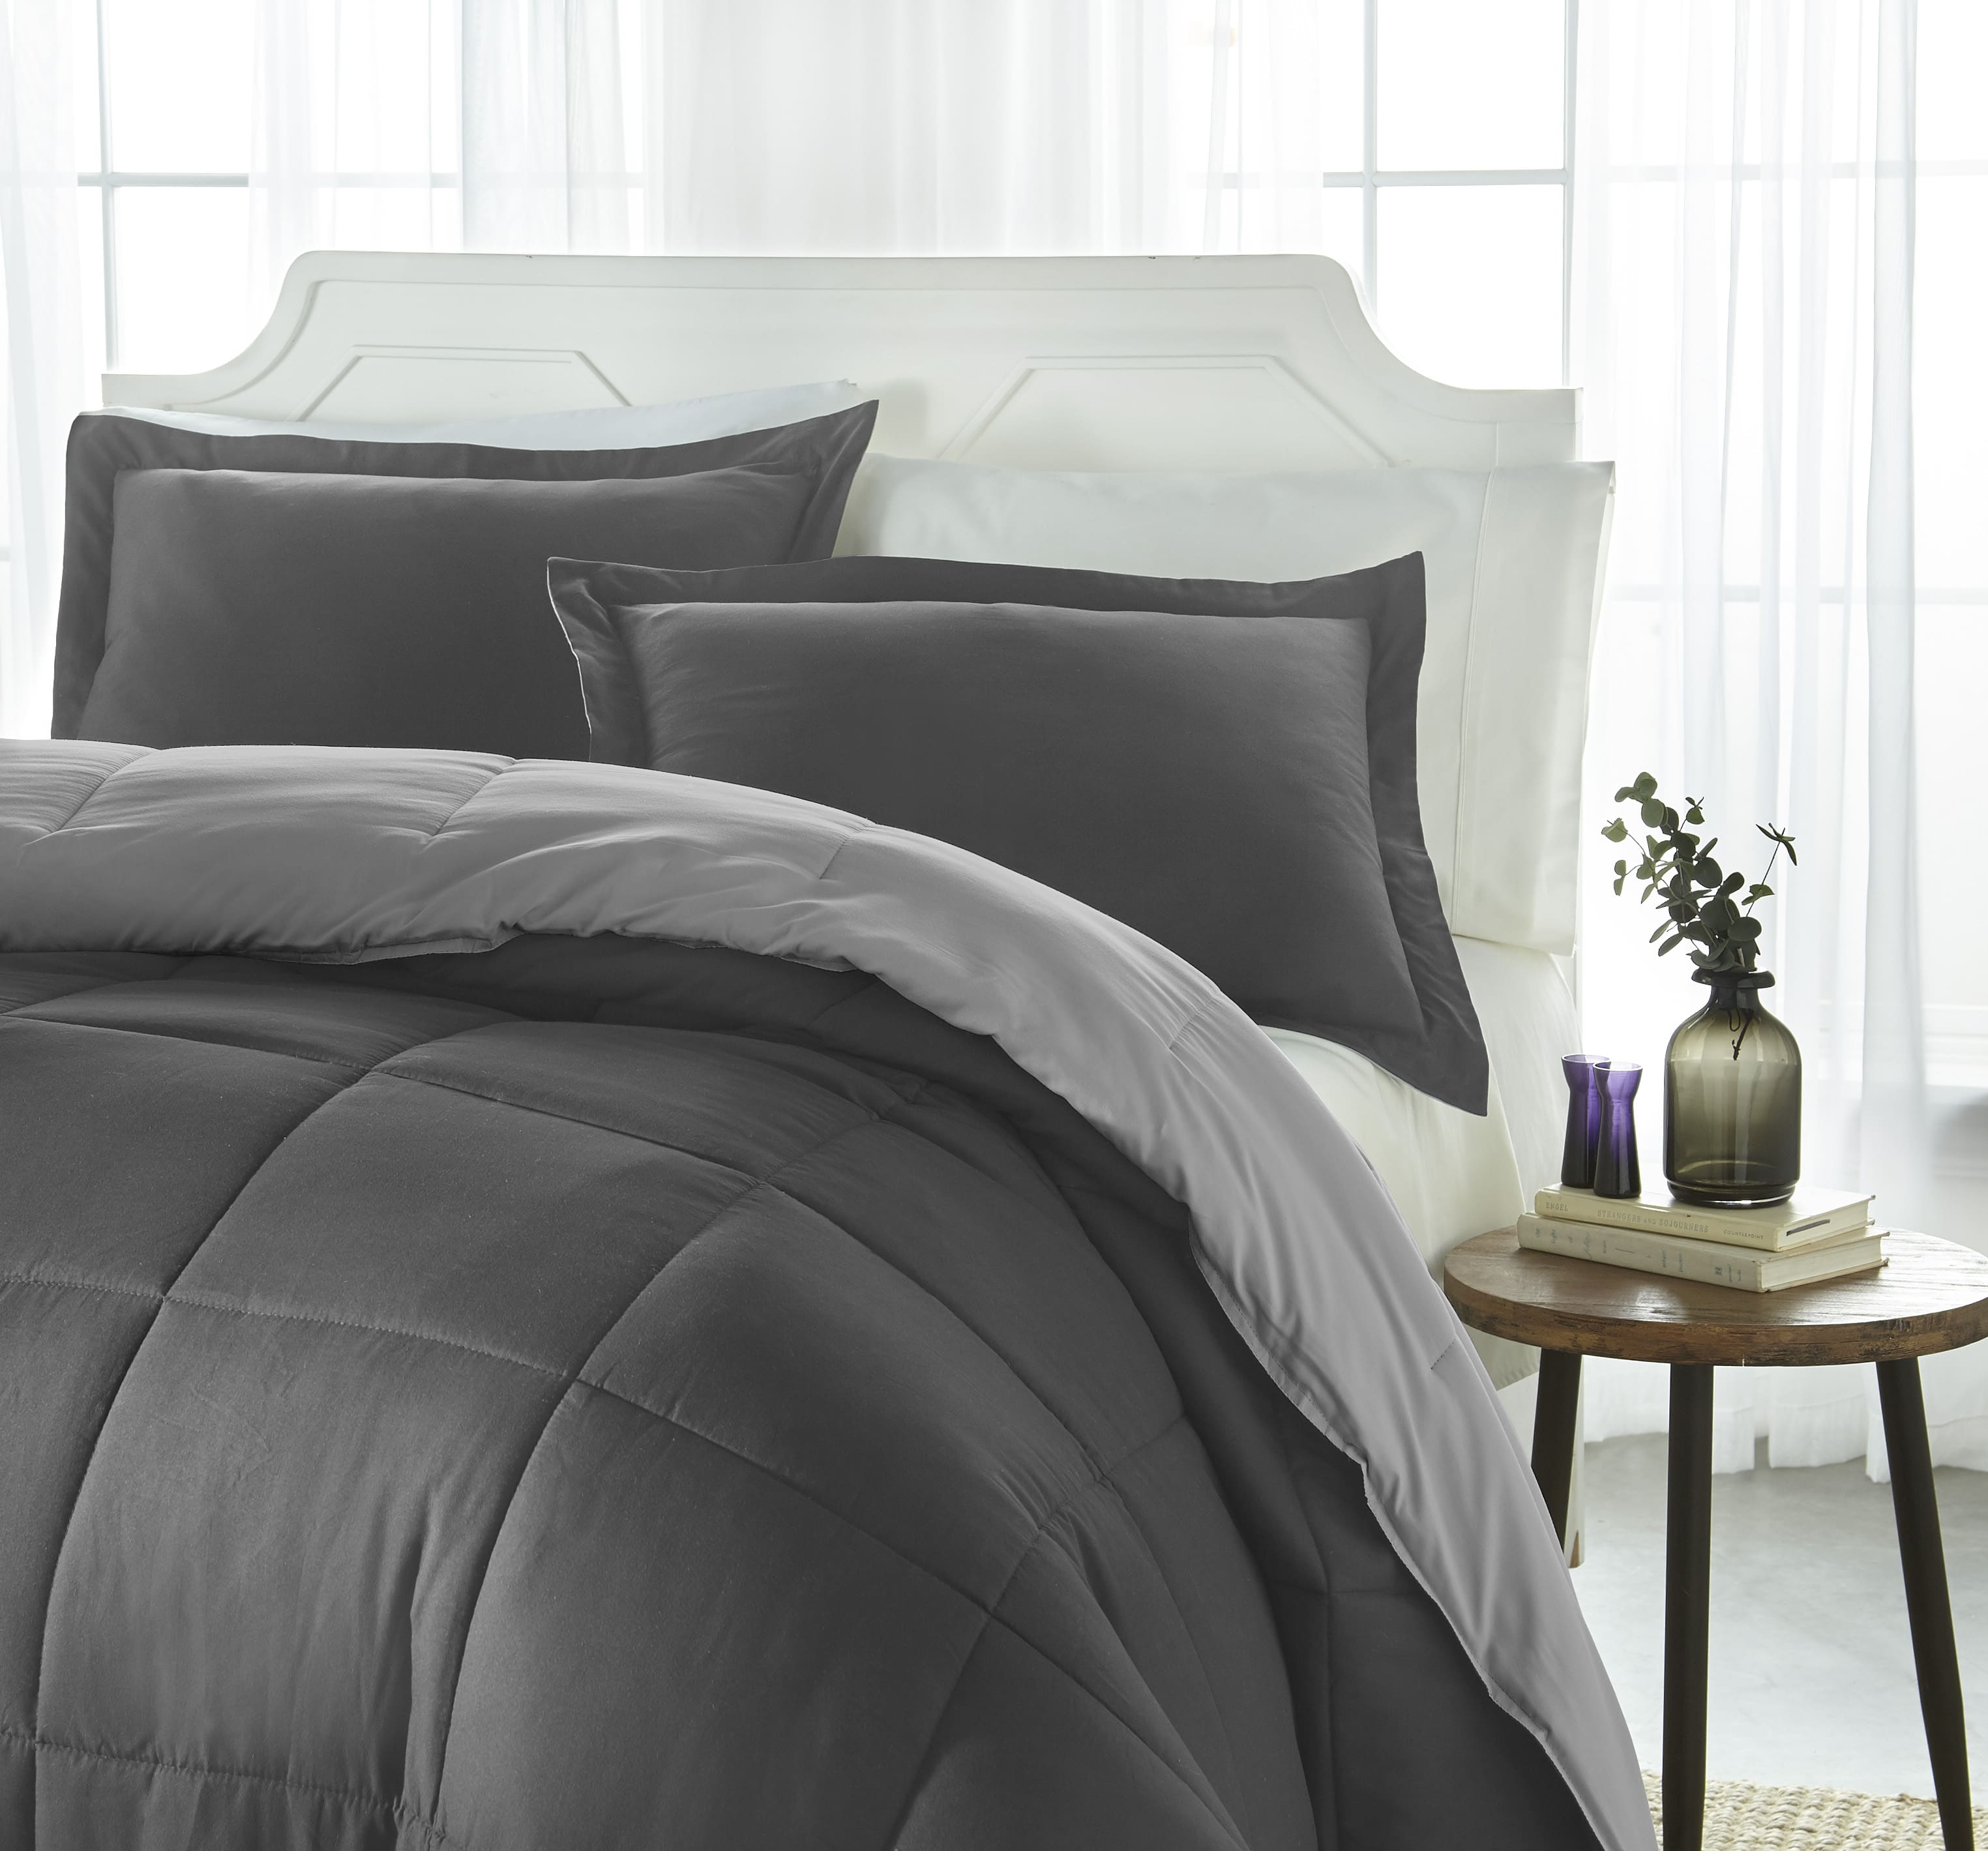 Reversible Down Alternative Comforter Sets: Starting at $25.49 + FS